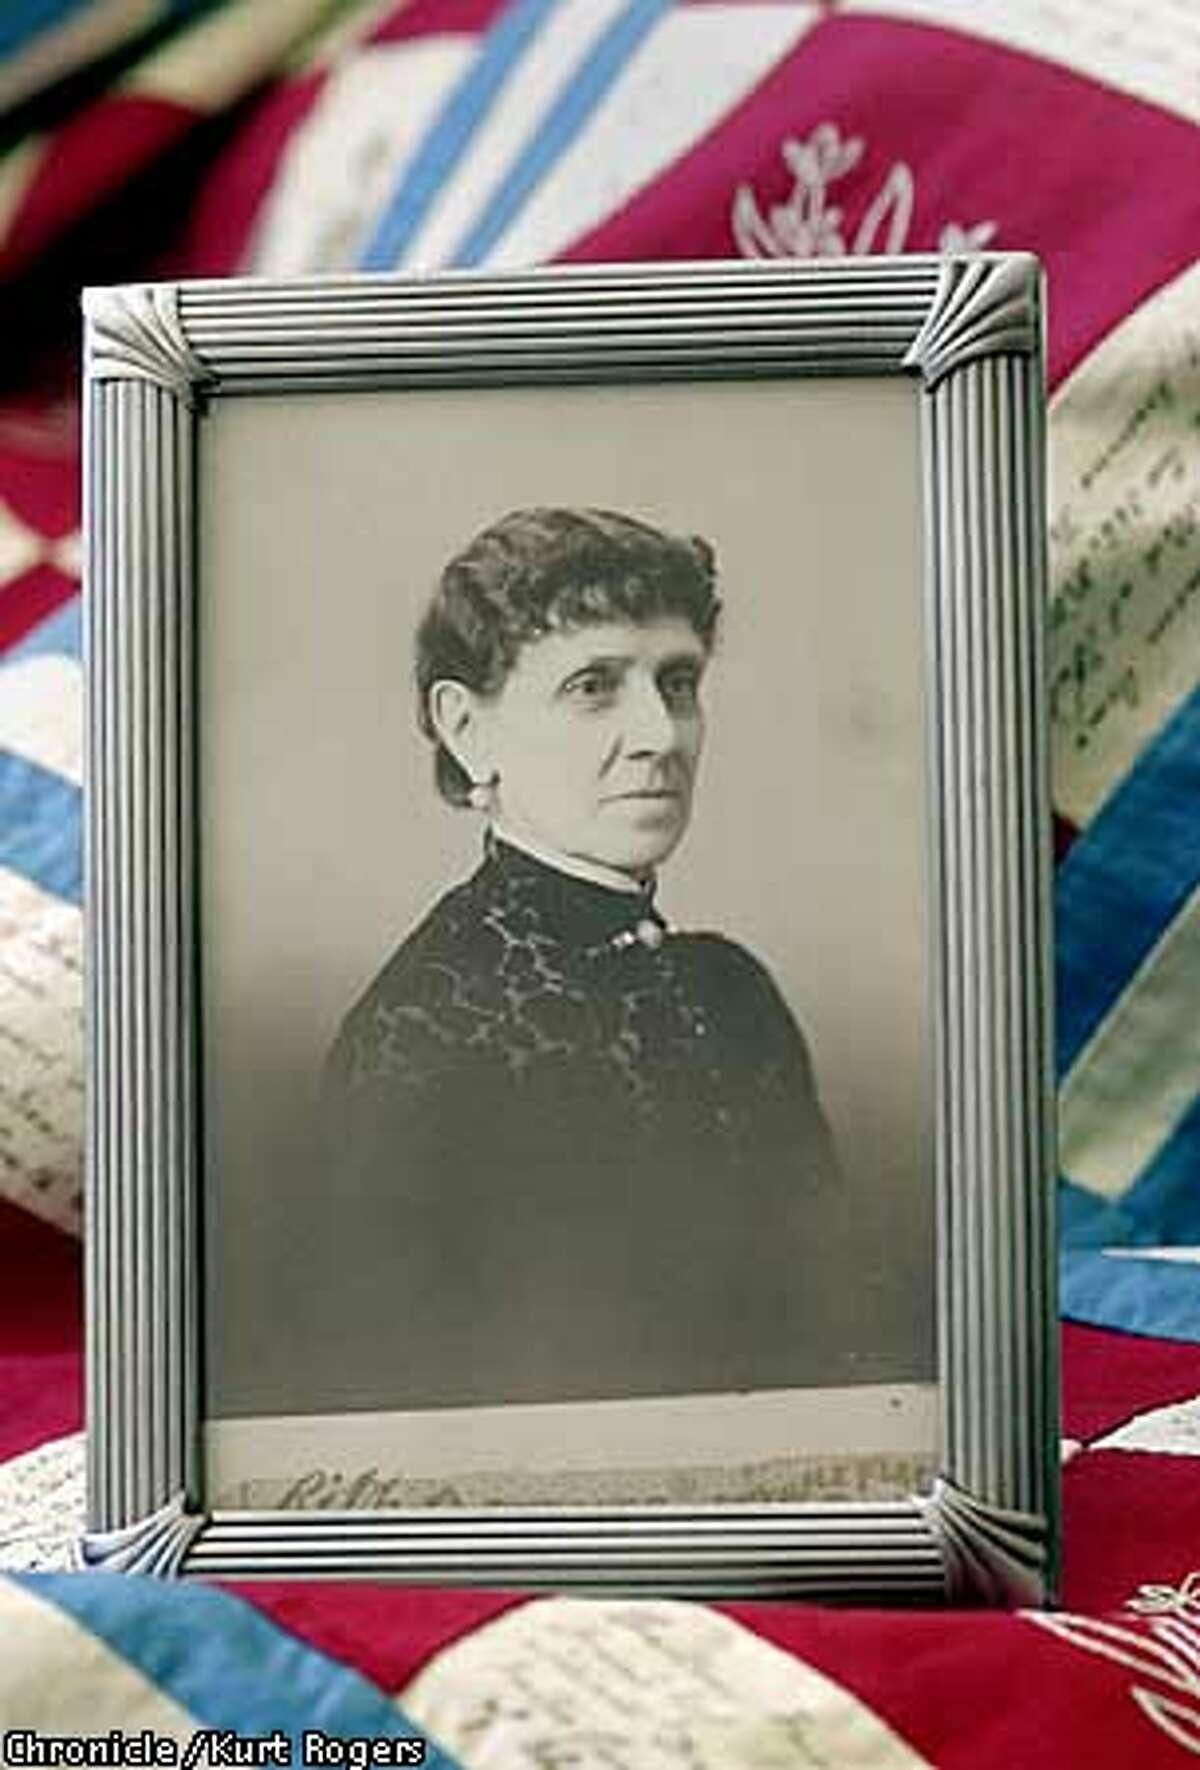 Emma Safford the woman who made the Quilt. The Great Great Great grandmother of Kris Mason. Kris Mason's family has cherished a memento of a different sort: a handmade quilt dating to the U.S. Civil War. This quilt, recently valued at $250,000 by Sotheby's auction house, will be the centerpiece of an All American display at the seaside resort over Fourth of July weekend. The quilt was hand-sewn at the height of the Civil War in 1862; every square features a piece of history including drawings of the 16 presidents-to-date .Photo By Kurt Rogers